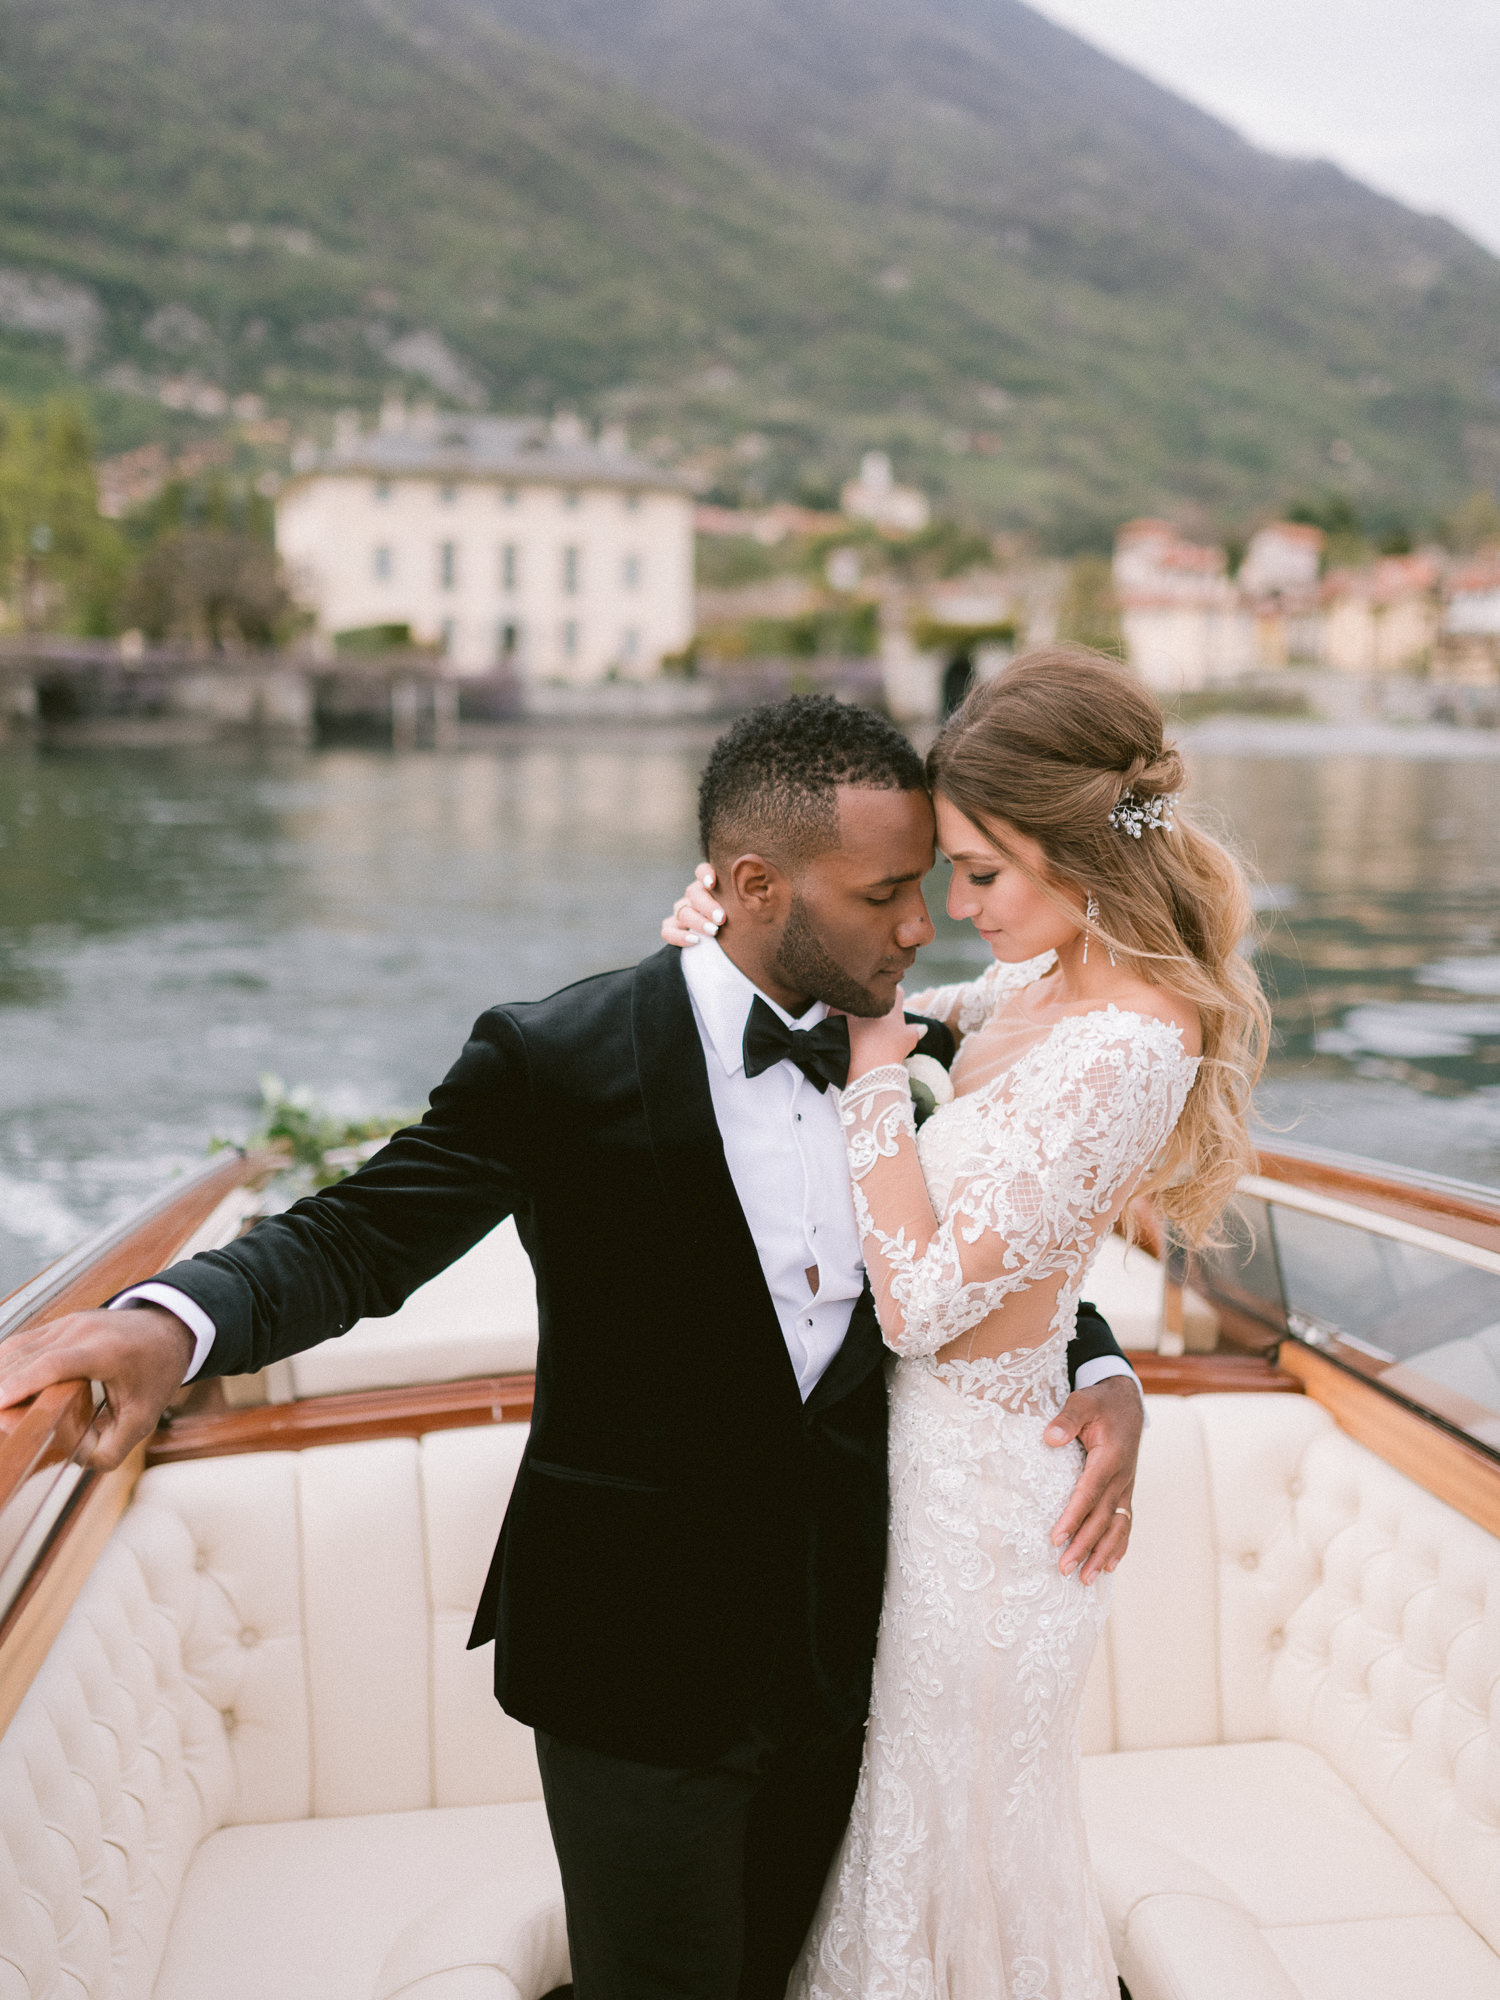 Couple leaving Lake Como wedding venue - photo by Gianluca Adovasio Photography - Italy